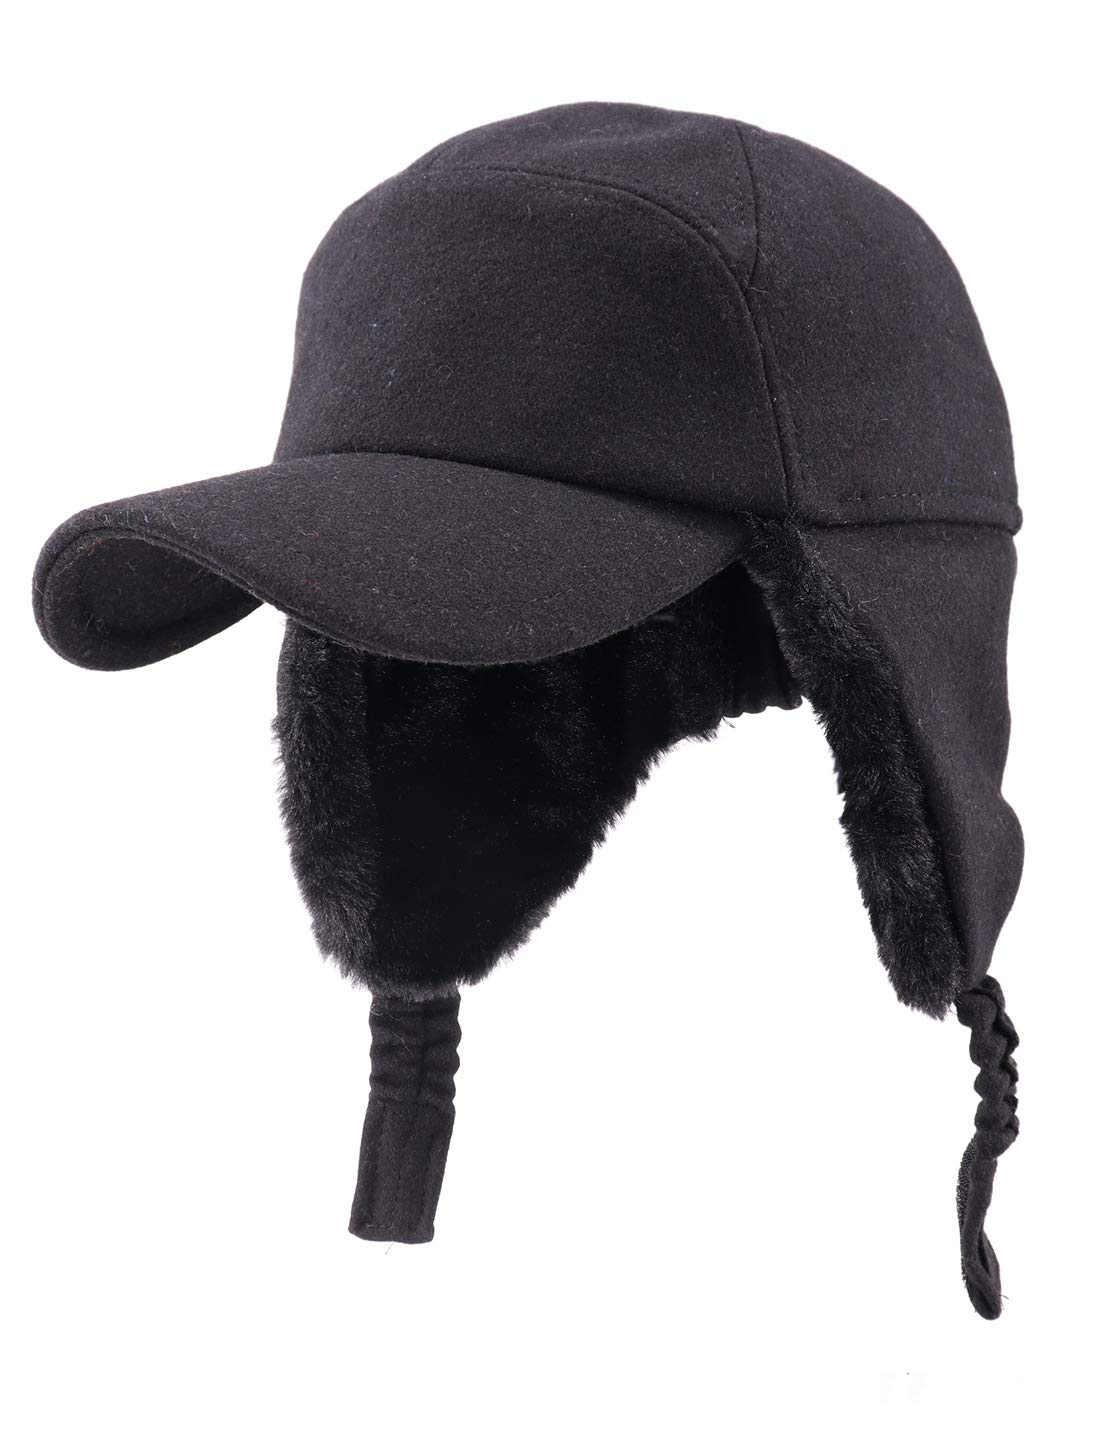 Best Rated in Men s Hunting Hats   Helpful Customer Reviews - Amazon.com 7c8b5c86213e